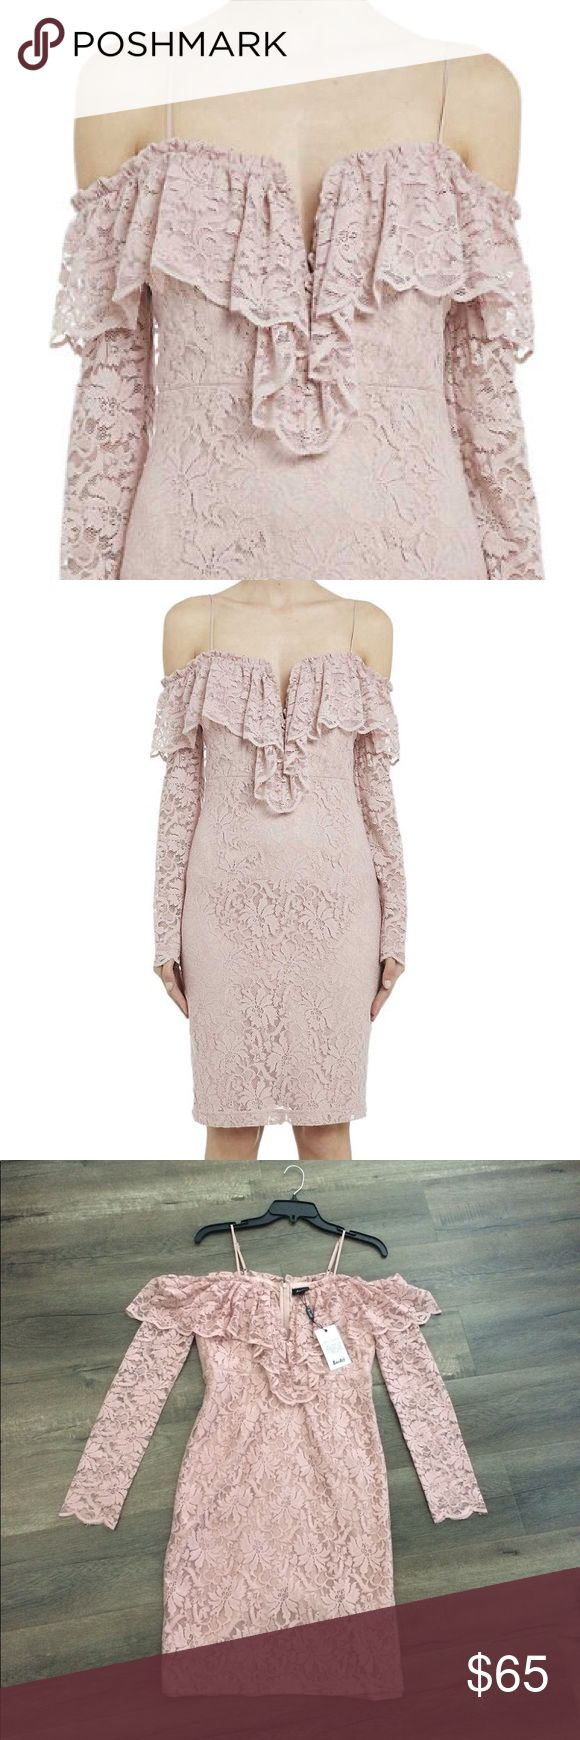 FLASH SALE Bardot Lace Cold Shoulder Ruffle Dress Price firm. Elegant, romantic lace midi dress with a slim bodycon silhouette with ruffled details. Modified sweetheart neckline with cold shoulders and adjustable straps. Romantic dusty pink blush color. Long sleeves. Slightly padded bust, no need to wear a bra. Measures approximately 21 inches shoulder to shoulder at cold shoulder with plenty of stretch and 32 inches in length from neckline to hem (excluded adjustable strap) Bardot Dresses